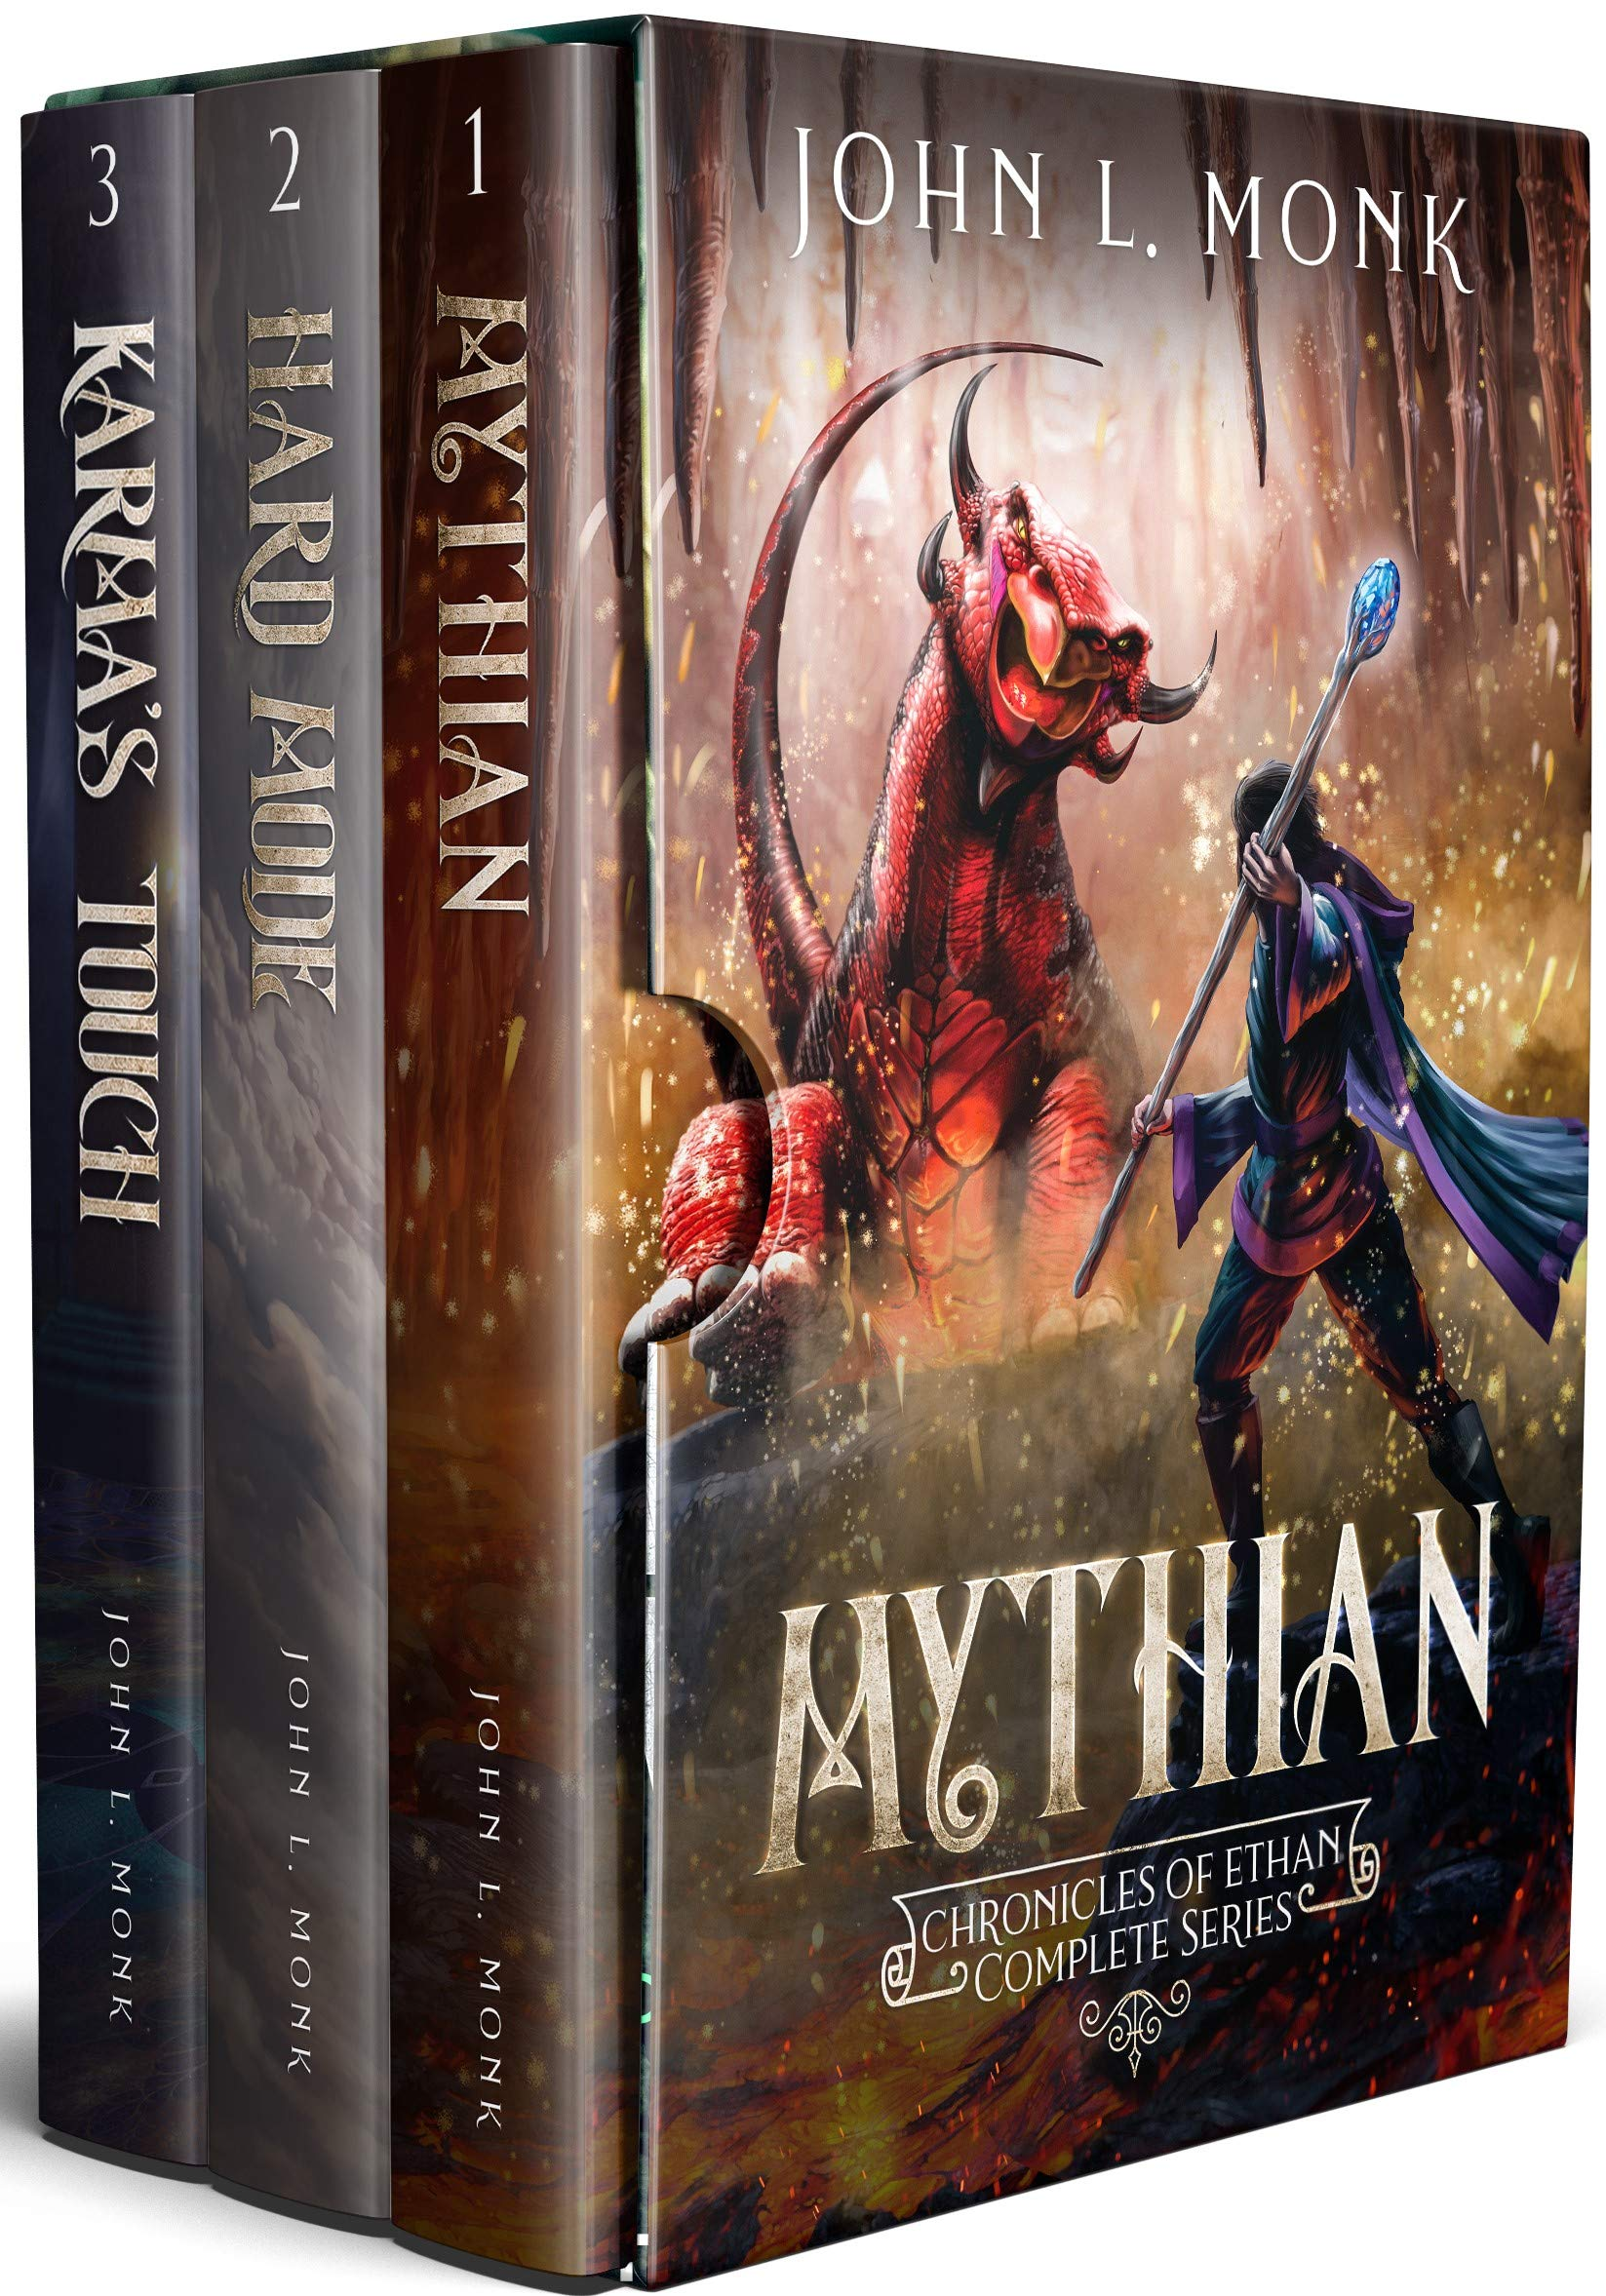 Chronicles of Ethan Complete Series: A LitRPG / GameLit Fantasy Adventure